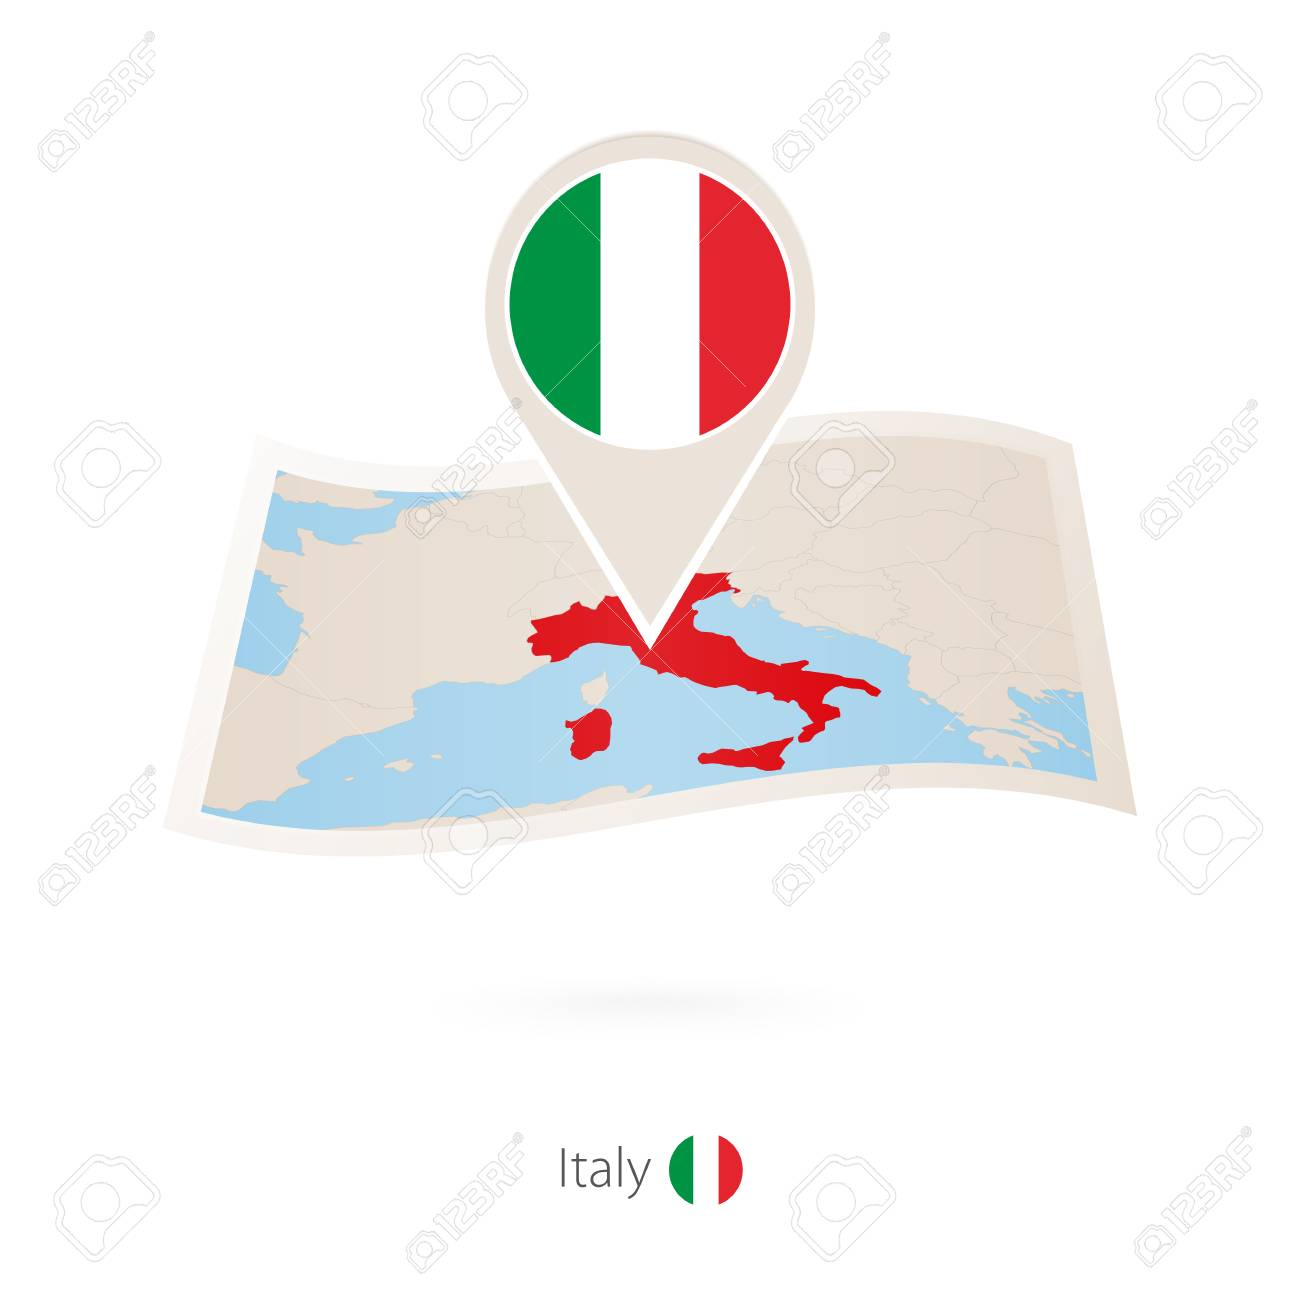 folded paper map of italy with flag pin of italy vector illustration rh 123rf com folded flag vector folded flag vector